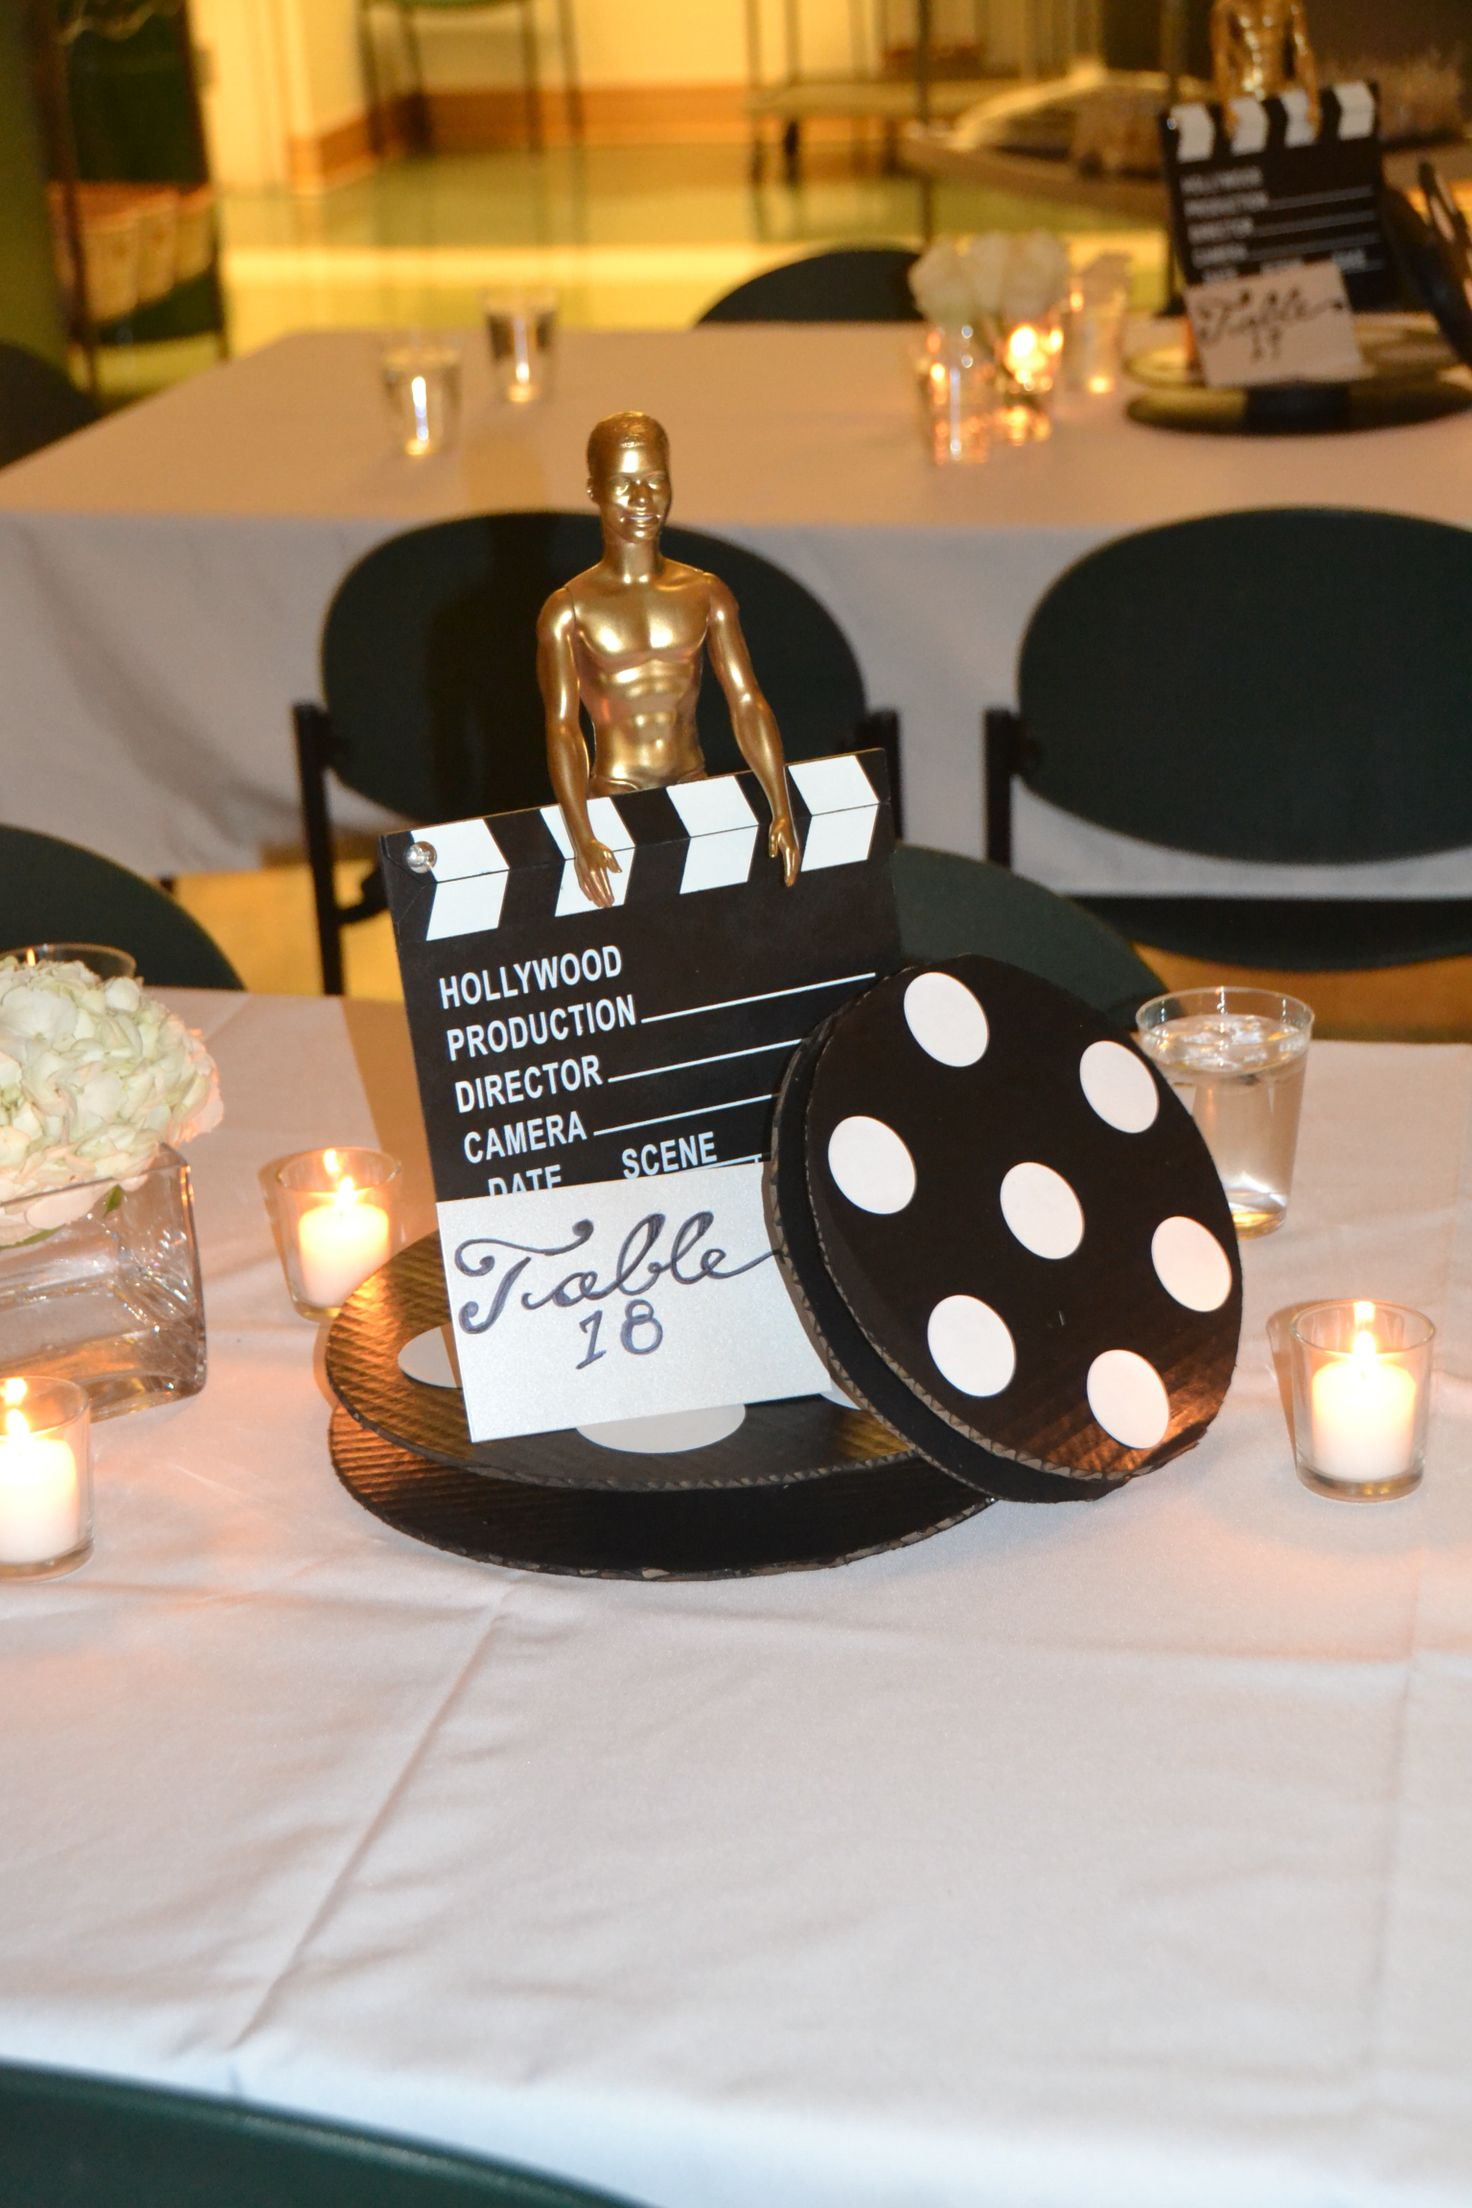 Hollywood Theme Centerpiece Old Hollywood Theme Party Pinterest Hollywood Theme